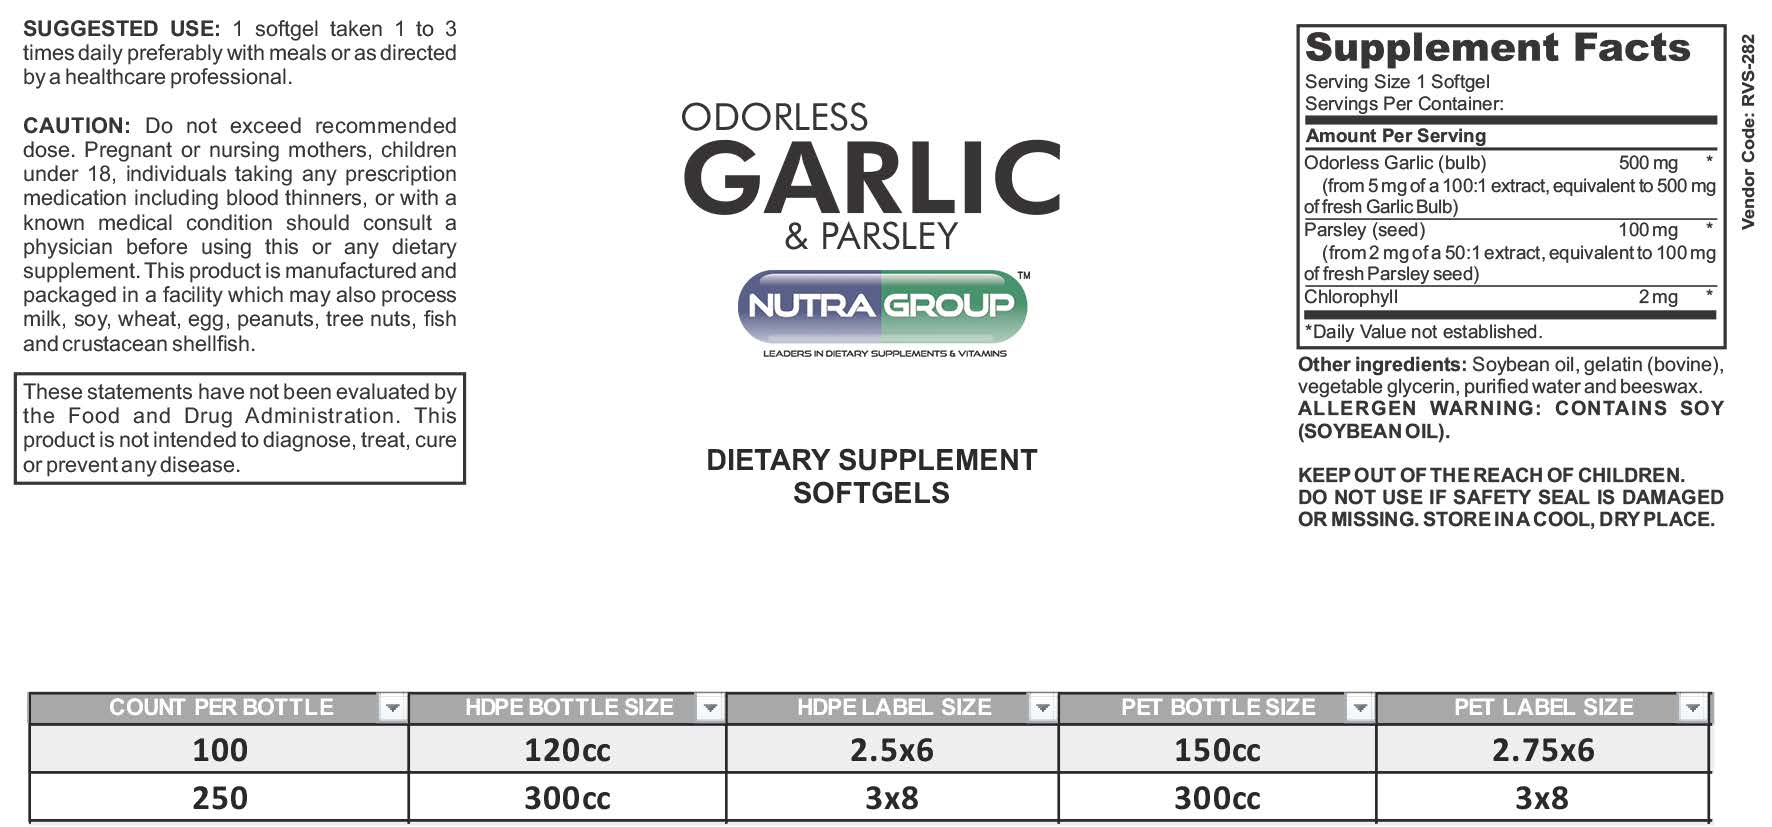 Private Label Garlic & Parsley Supplement